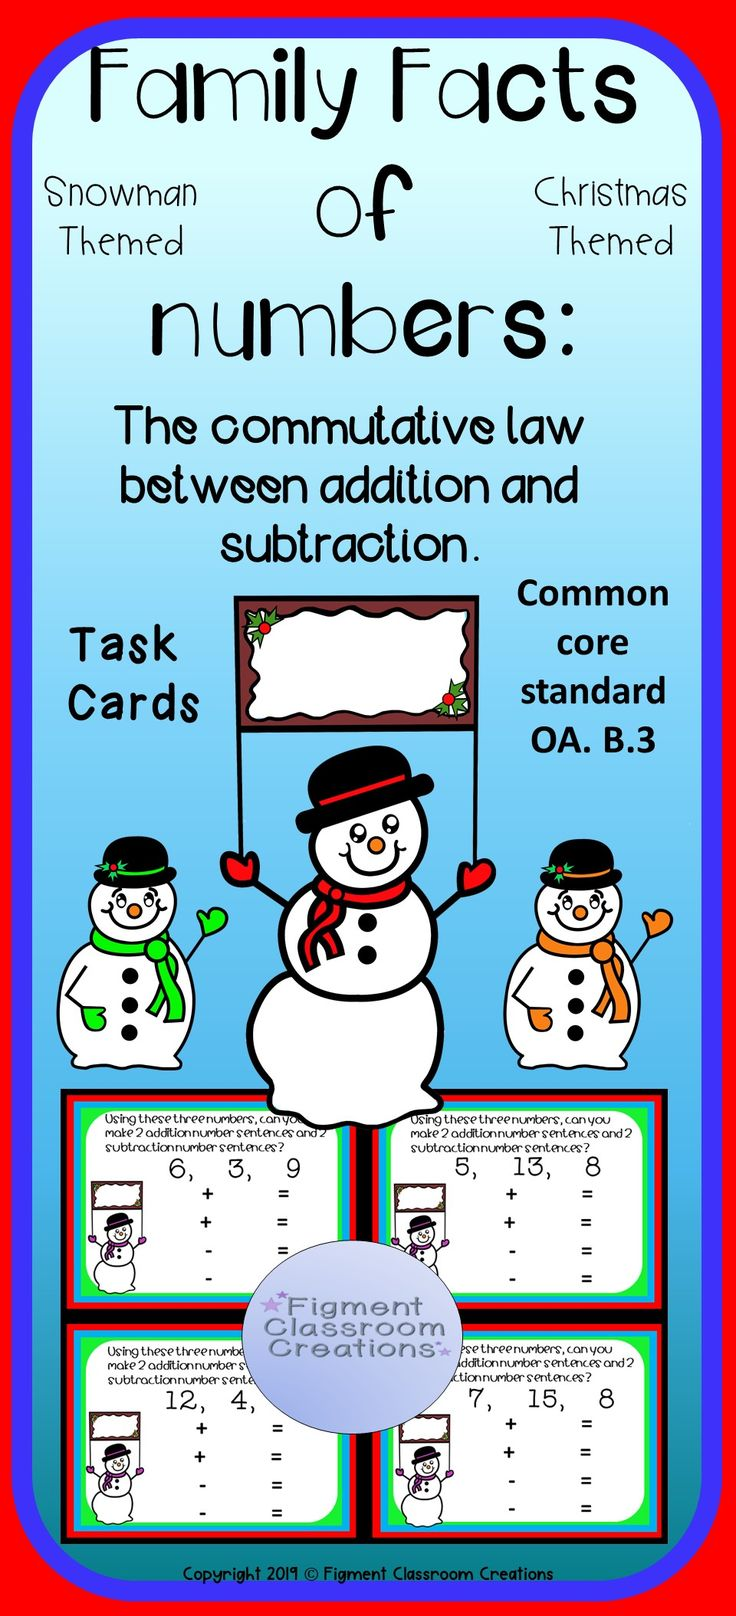 Relationship Between Adding And Subtracting Supports Grade 1 Year 1 Maths Addition And Subtraction Subtraction Year 1 Maths Common core adding and subtracting